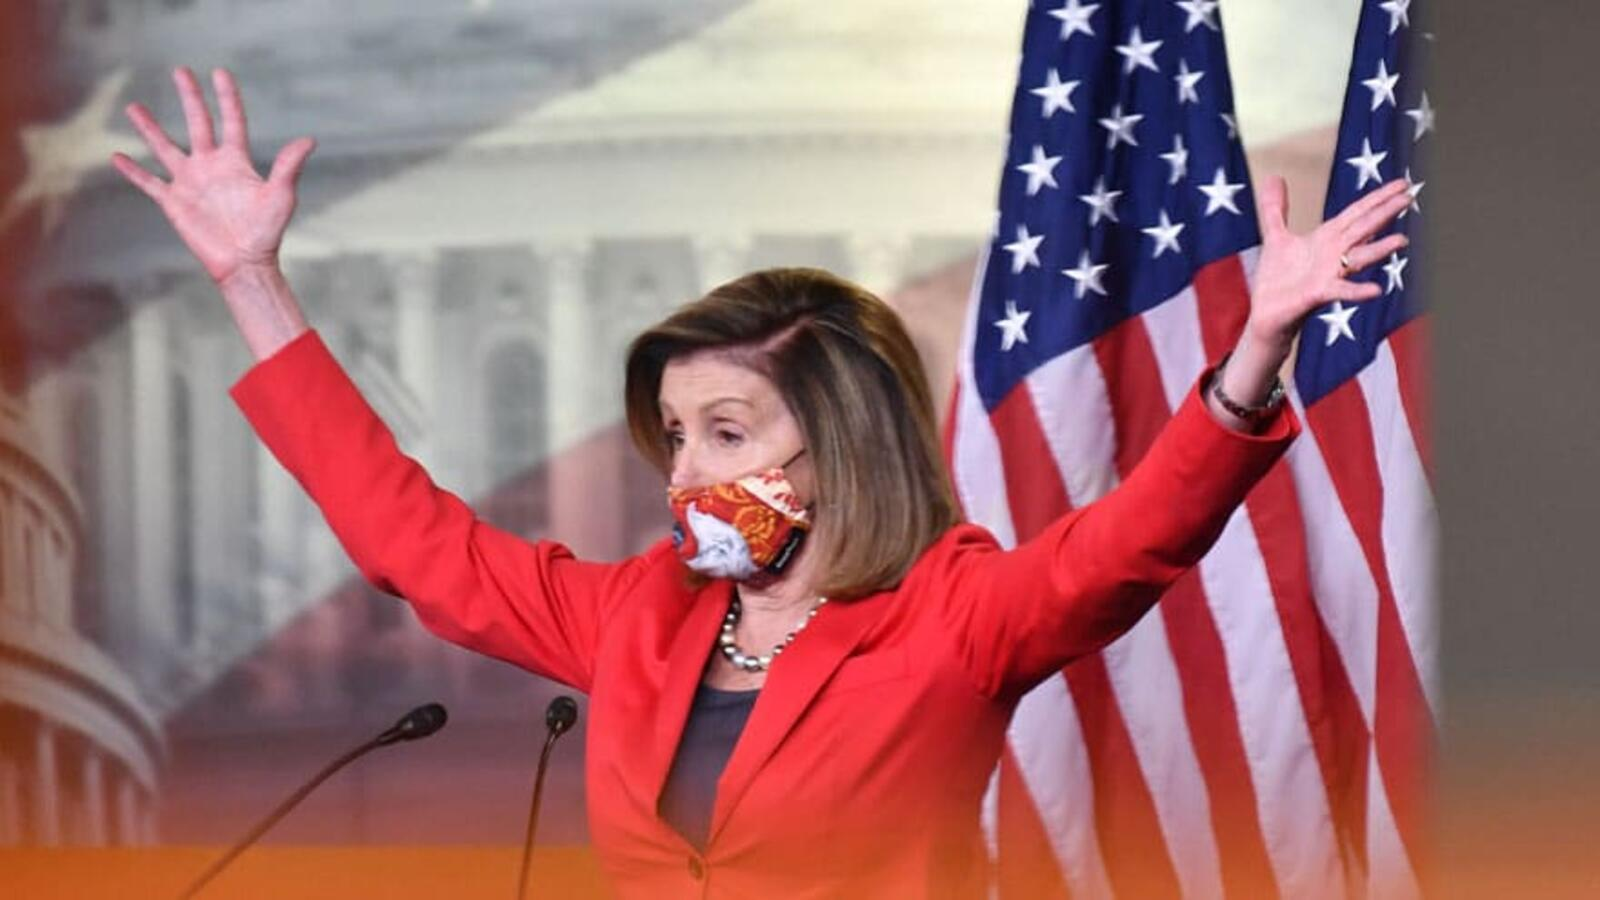 HERE WE GO: Pelosi Urges Dems to Pass Immigration Reform Bill Without Re...